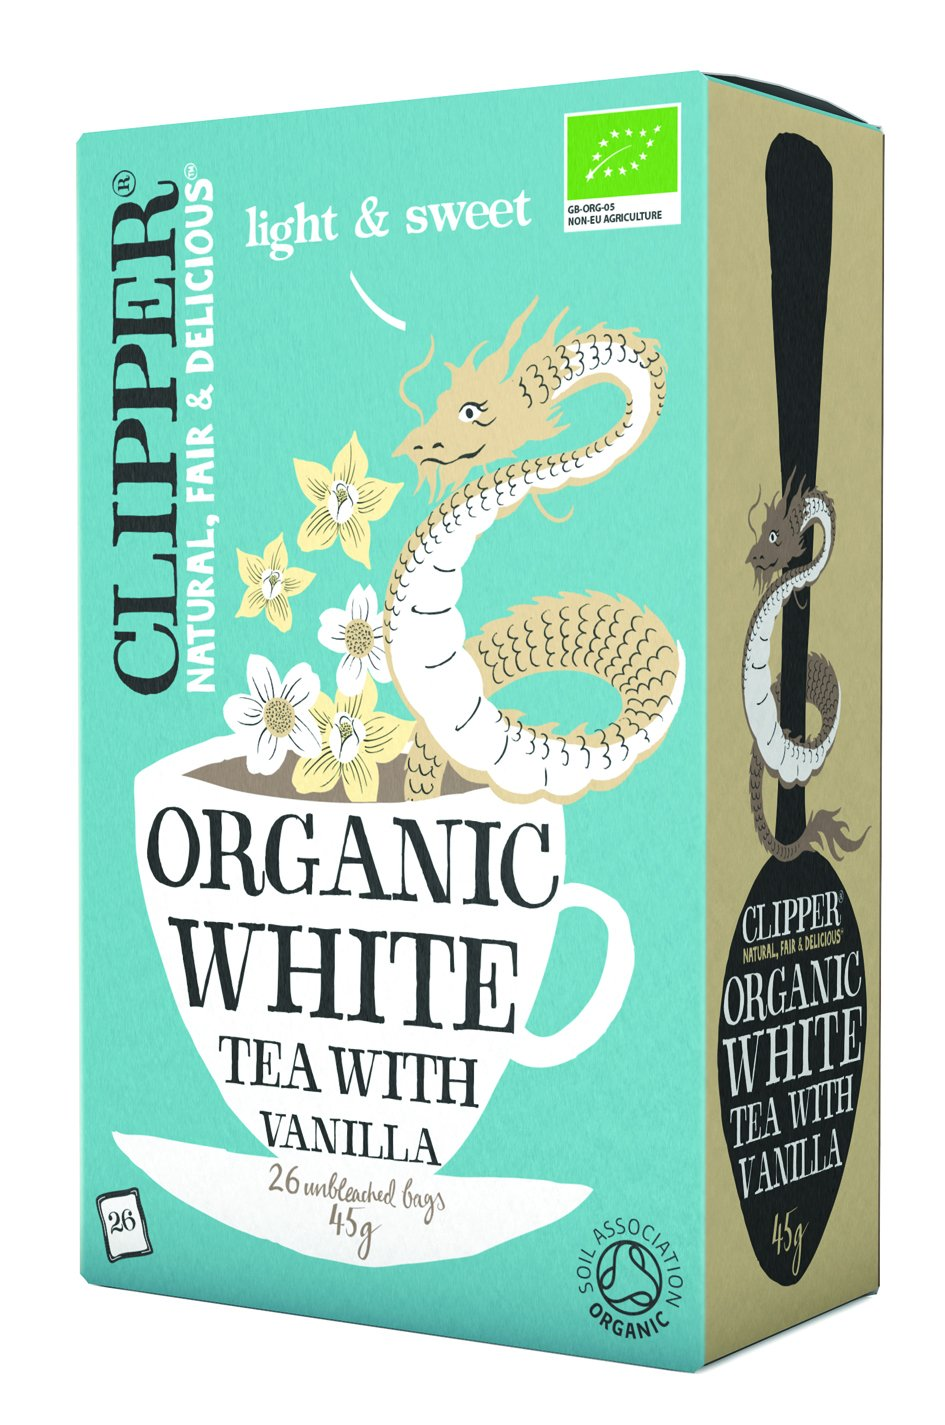 Clipper Organic White Tea with Vanilla (26) - Pack of 6